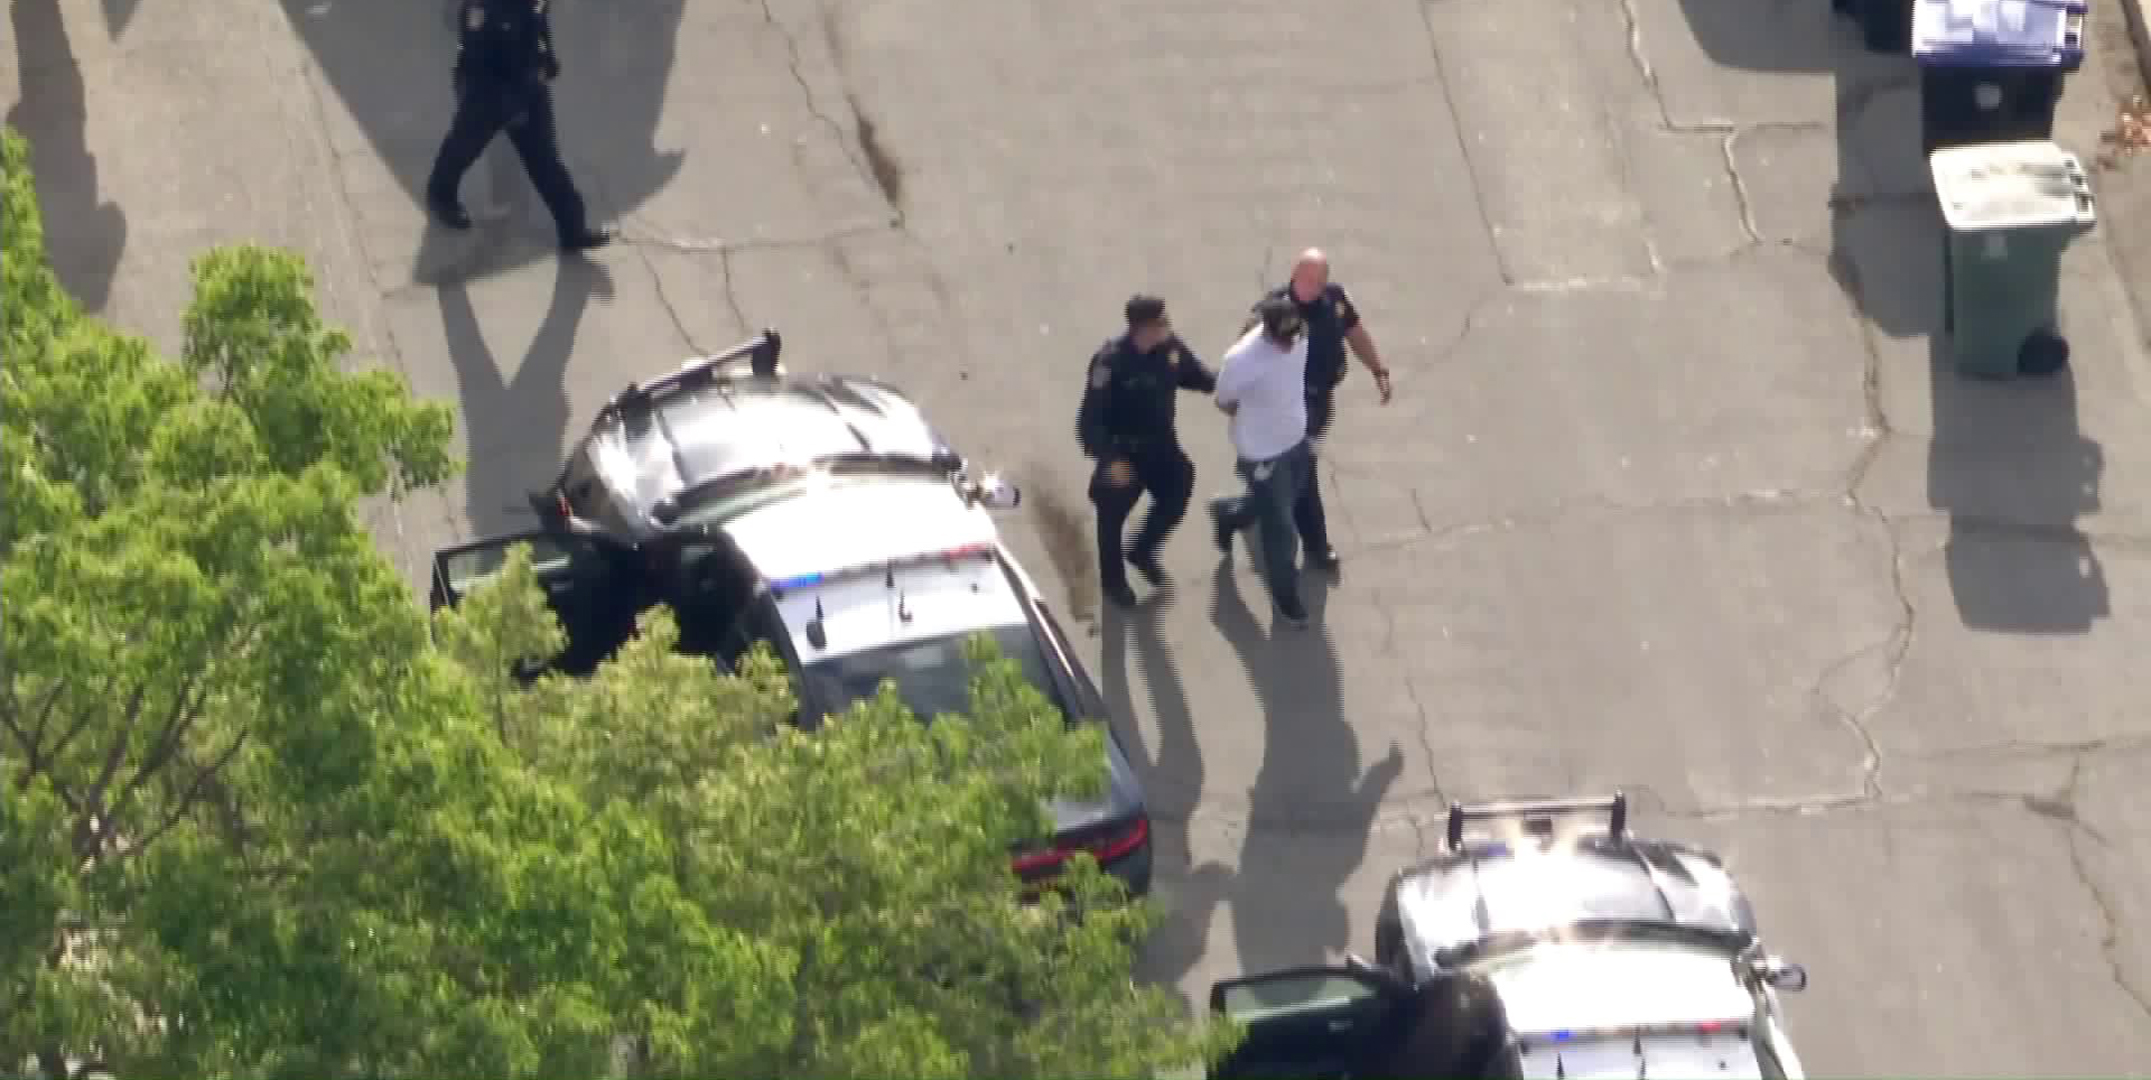 A driver who led authorities on a wild pursuit is taken into custody in Burbank on May 19, 2020. (KTLA)